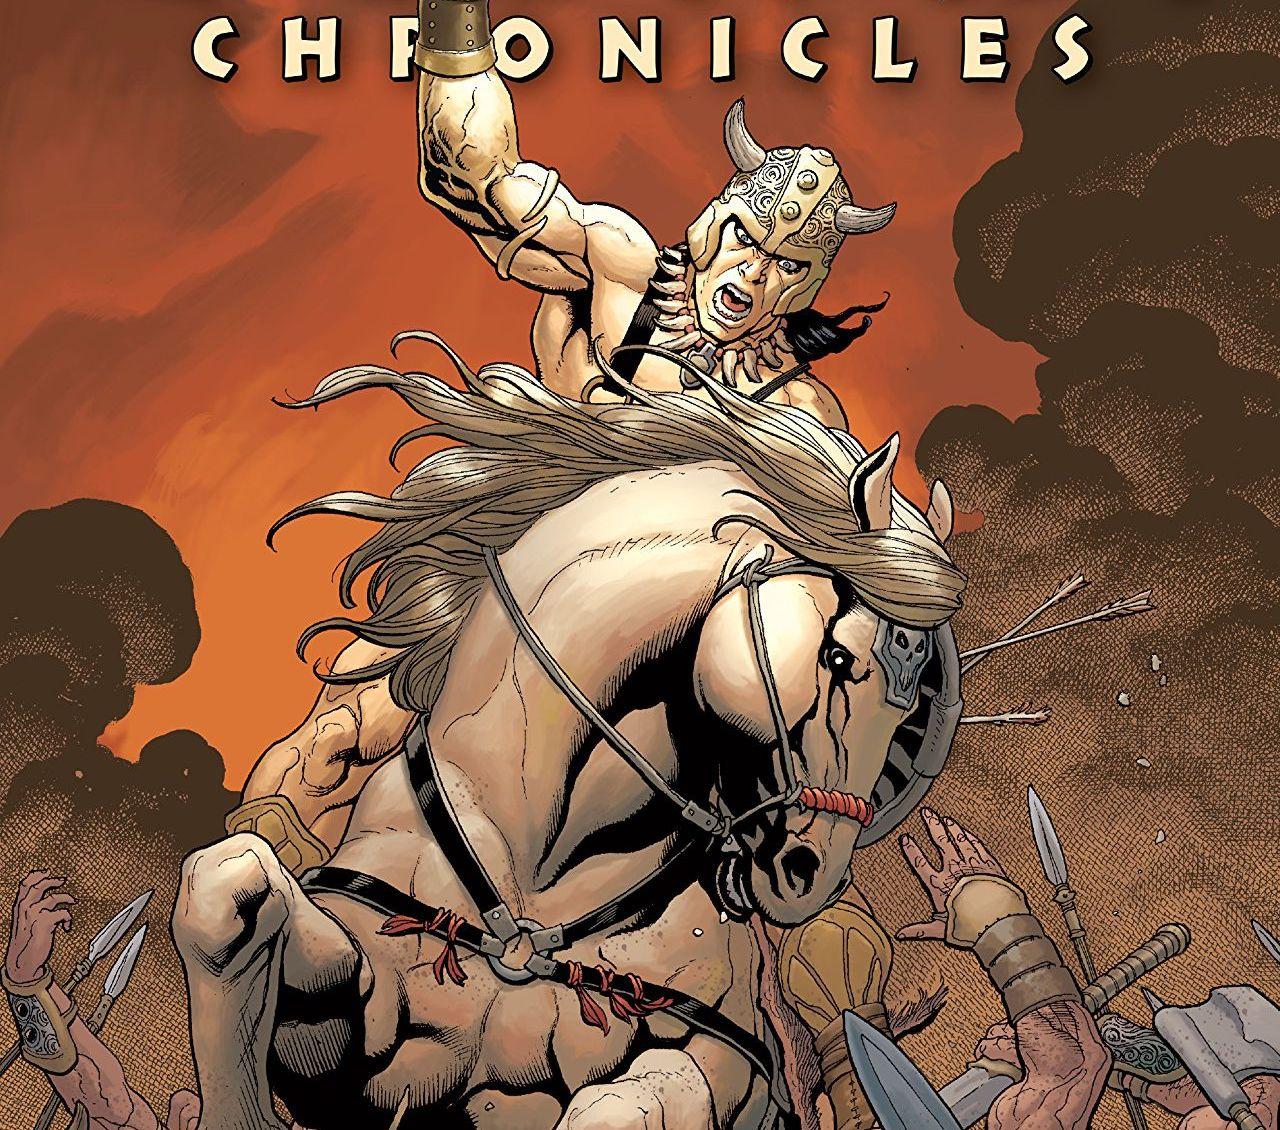 Conan Chronicles Epic Collection: Return To Cimmeria Review